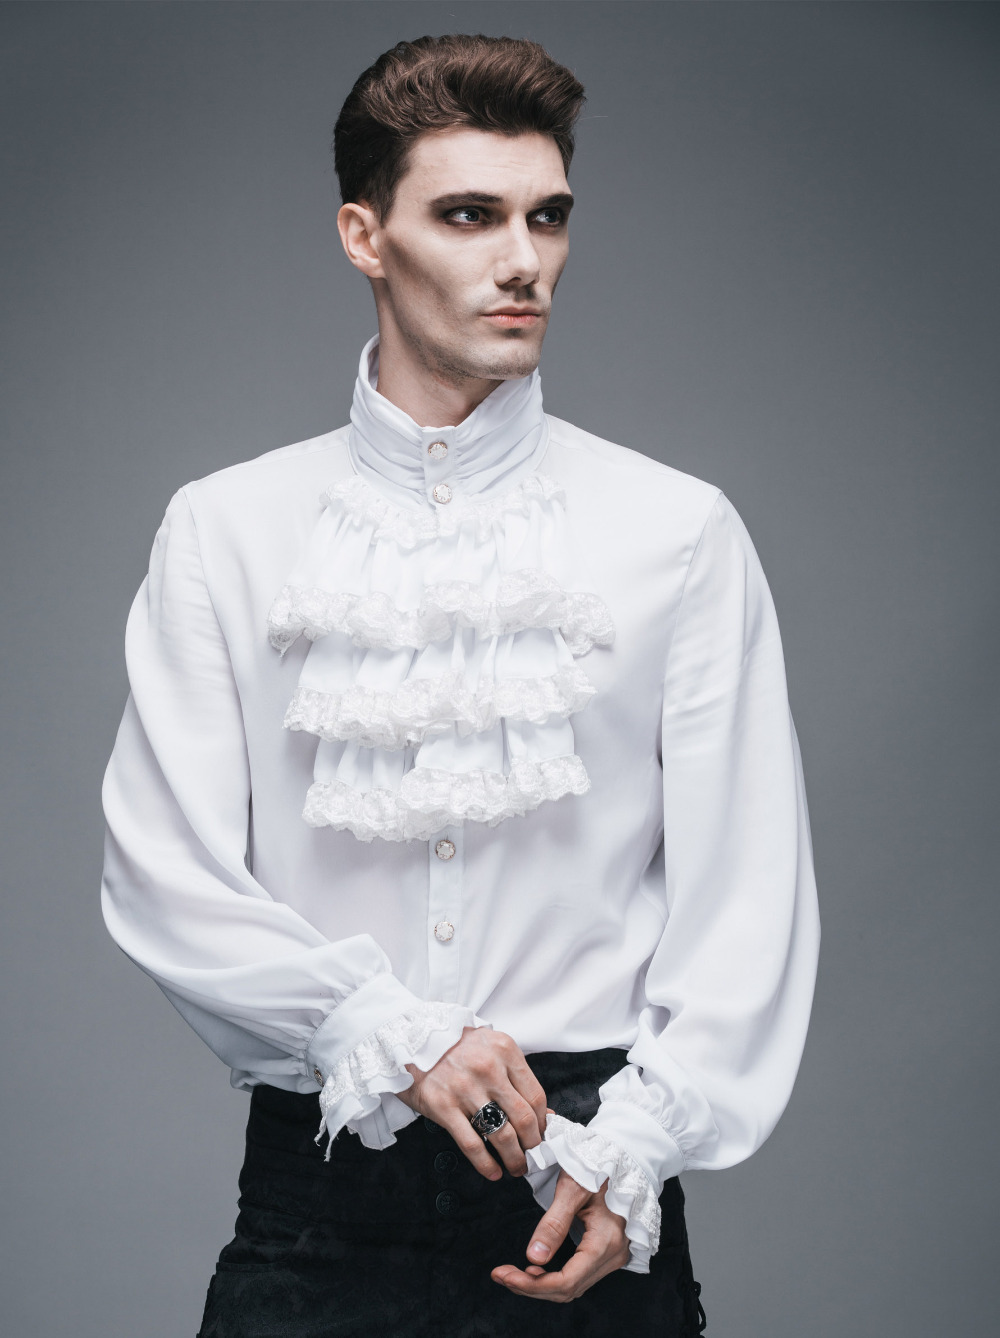 Image 5 - Fashion Punk New Gothic Party Steampunk Black Top Evening Shirt  Retro Palace Personality Pure White Men Casual Shirt Blousemen casual  shirtcasual shirtfashion casual shirts